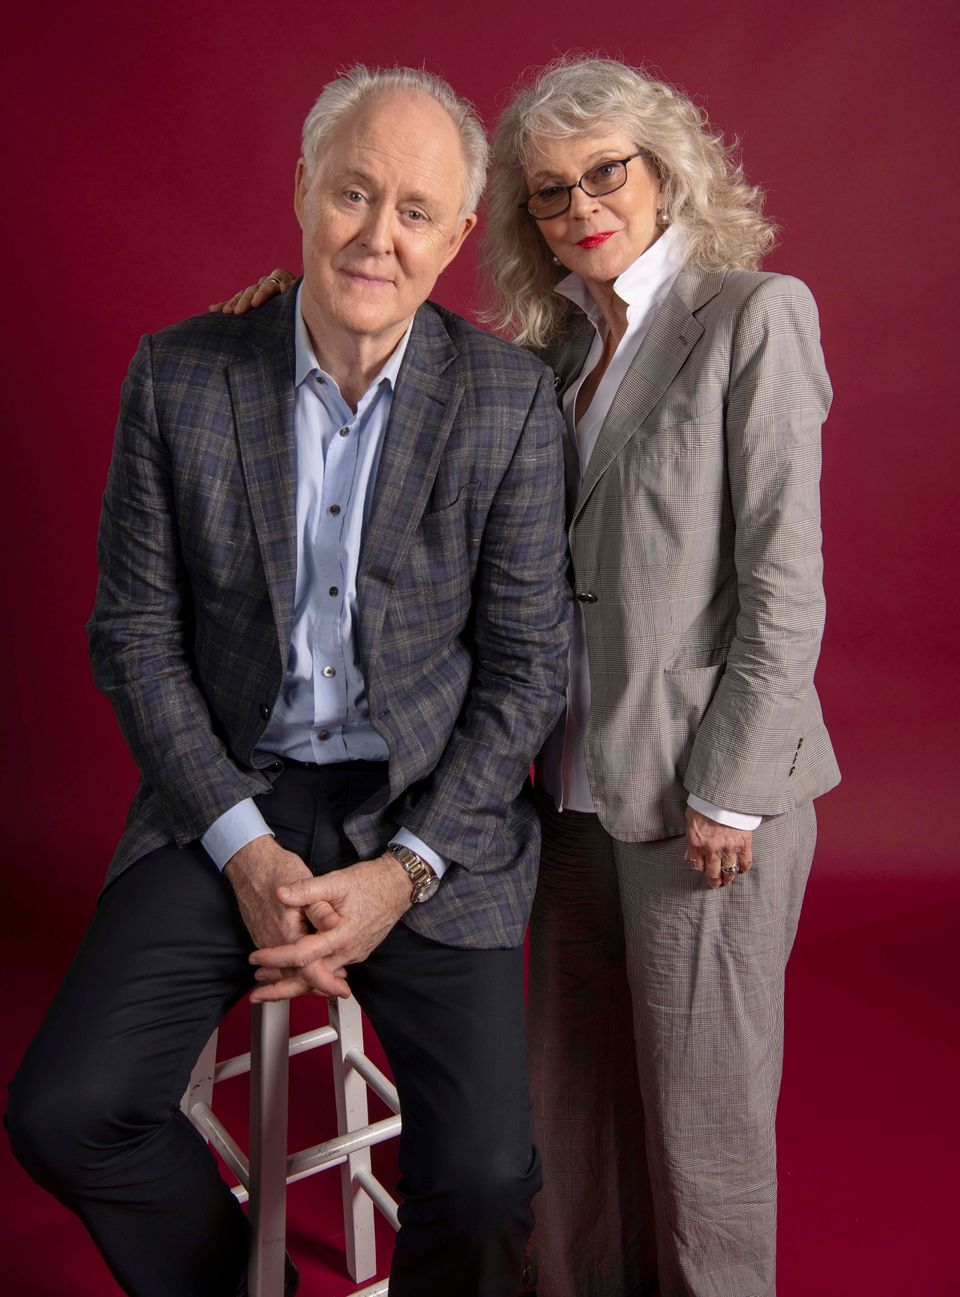 John Lithgow And Blythe Danner, Friends Till The End Of The